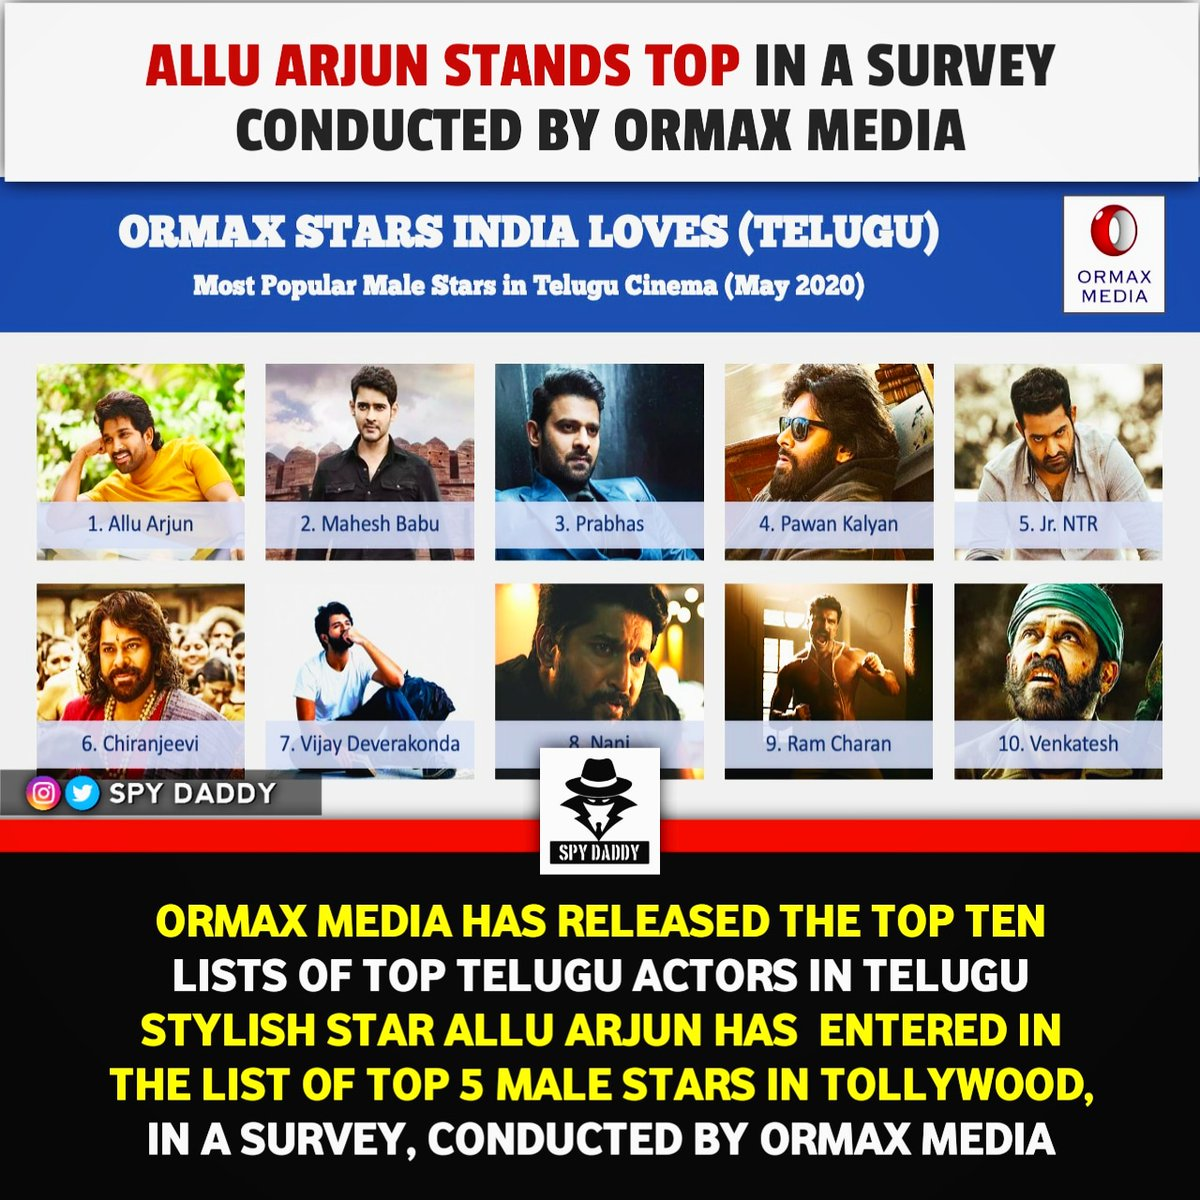 OrmaxMediahas released the top ten lists of Top #TeluguActors. Stylish Star#AlluArjunhas entered in the list of Top 5 male stars in #tollywood in a survey, conducted by#OrmaxMedia  #telugucinema #teluguactress #TeluguFilmNagarpic.twitter.com/GdV559vbog